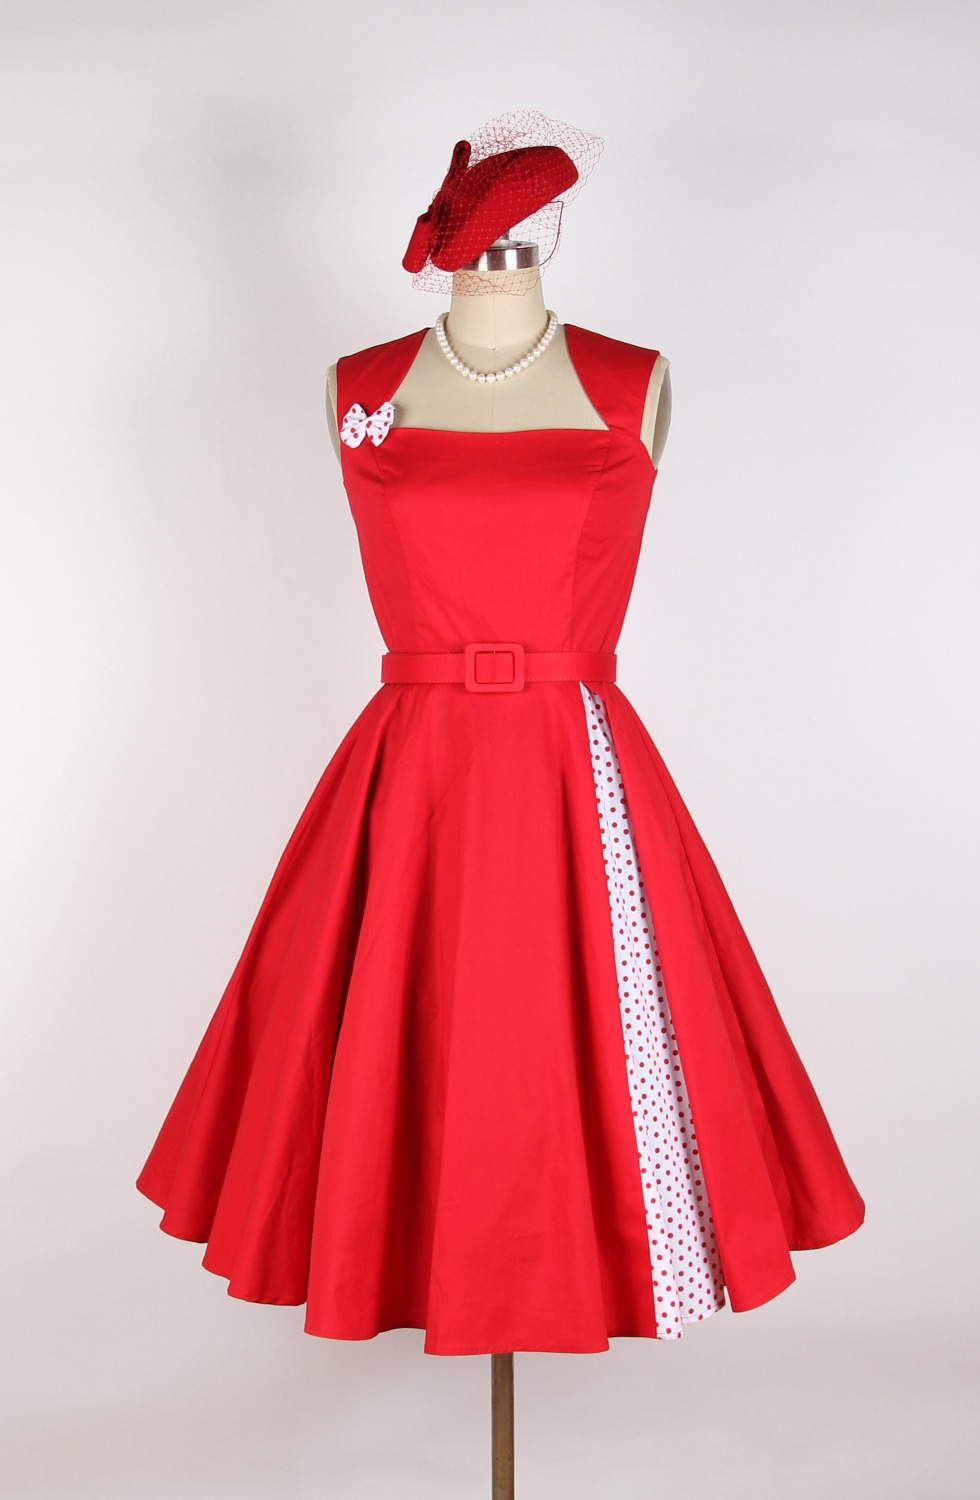 with polka dot 50s 60s rockabilly flower pattern